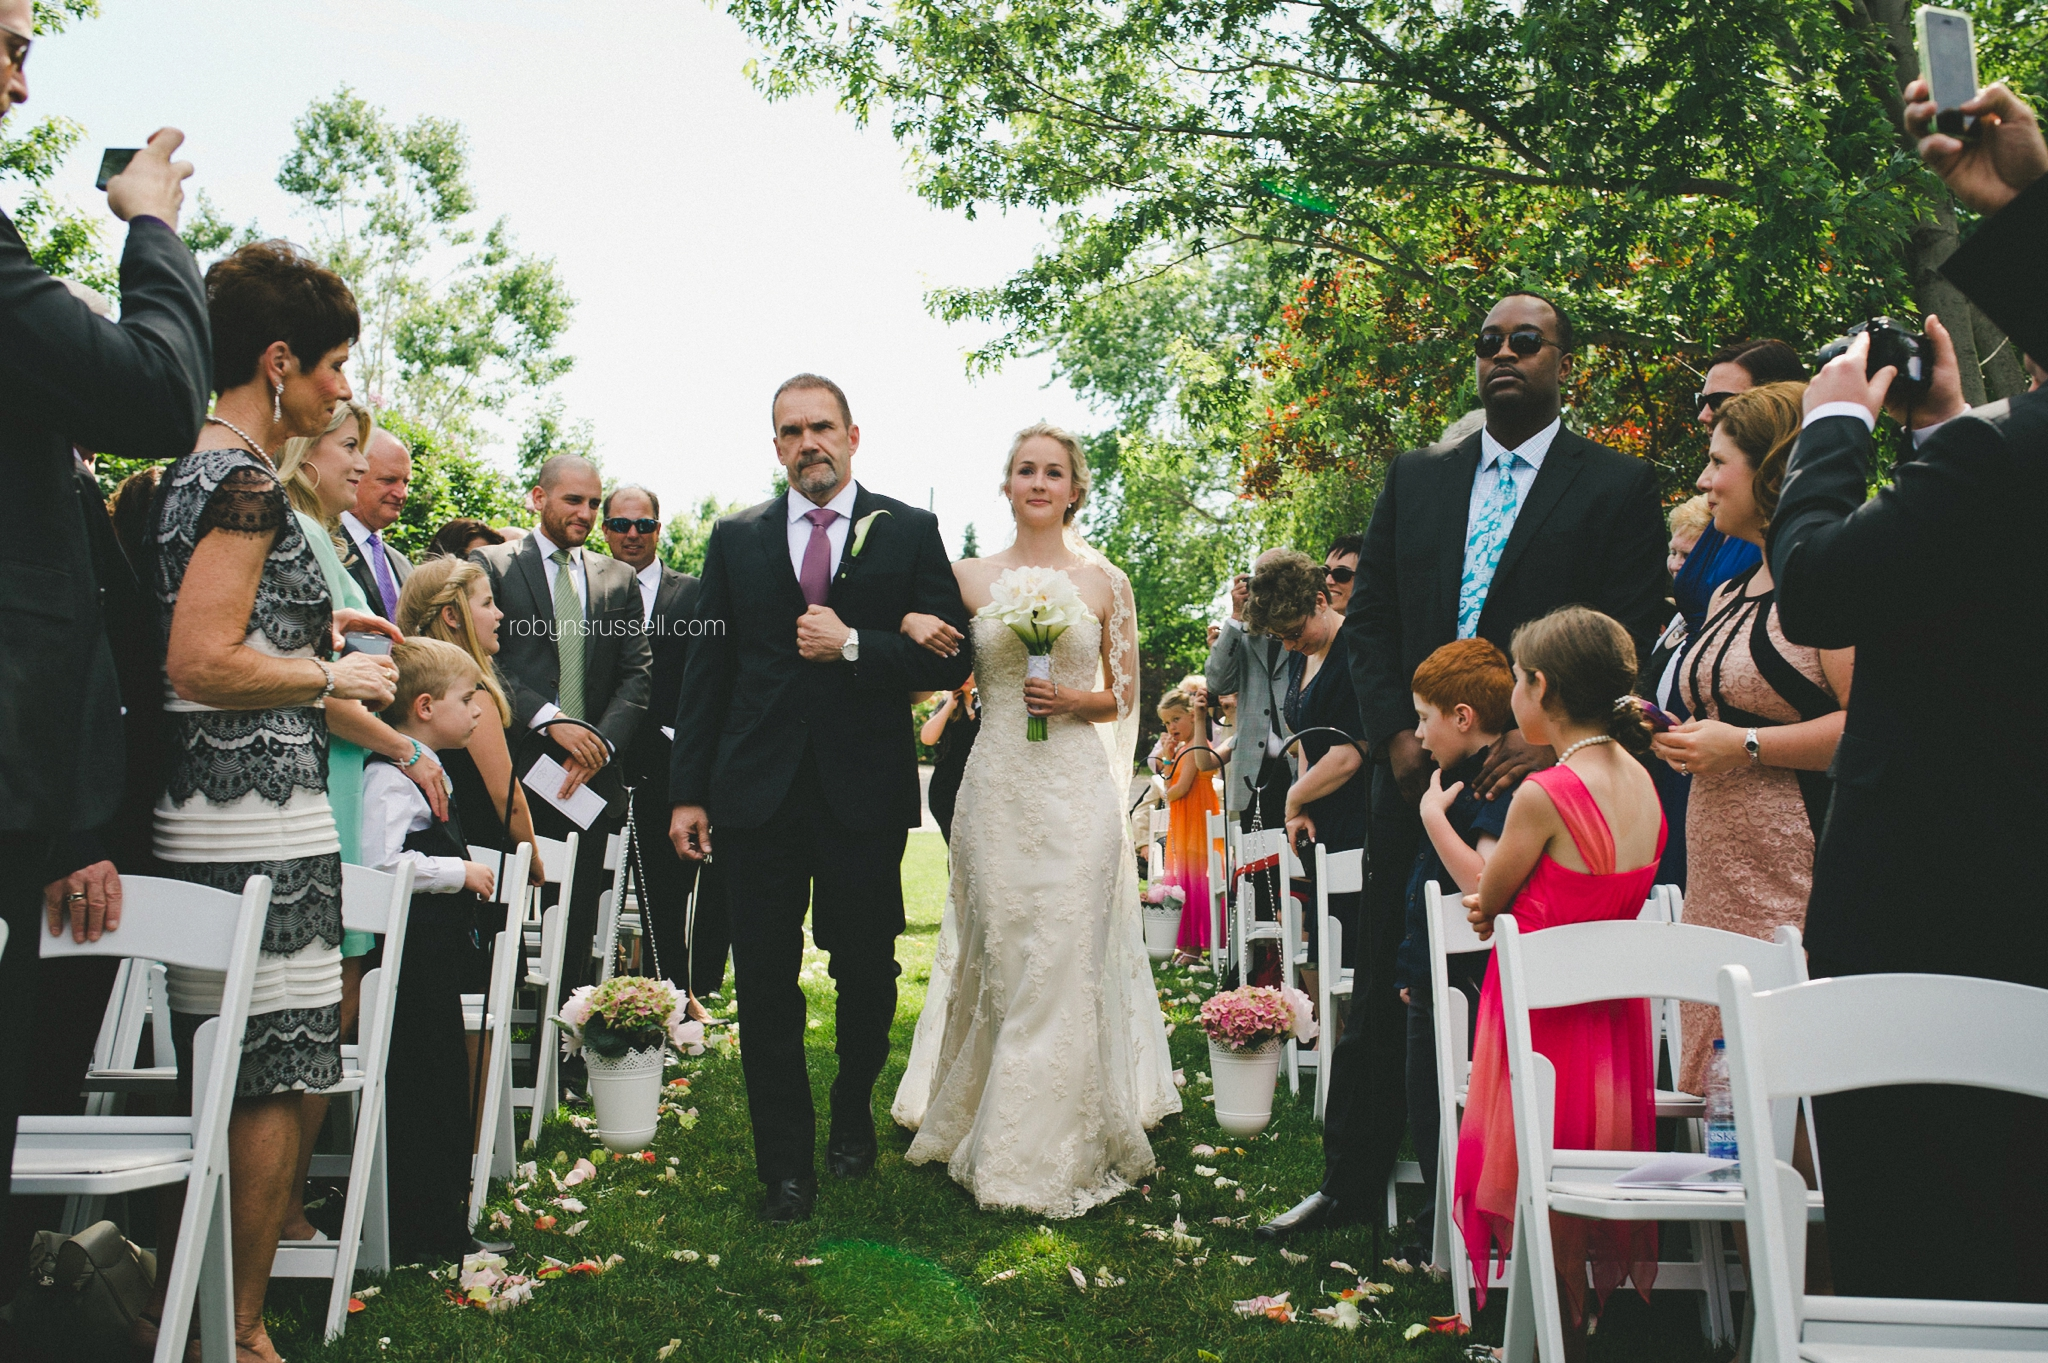 22-bride-walking-down-aisle-with-father-pipers-heath-oakville.jpg